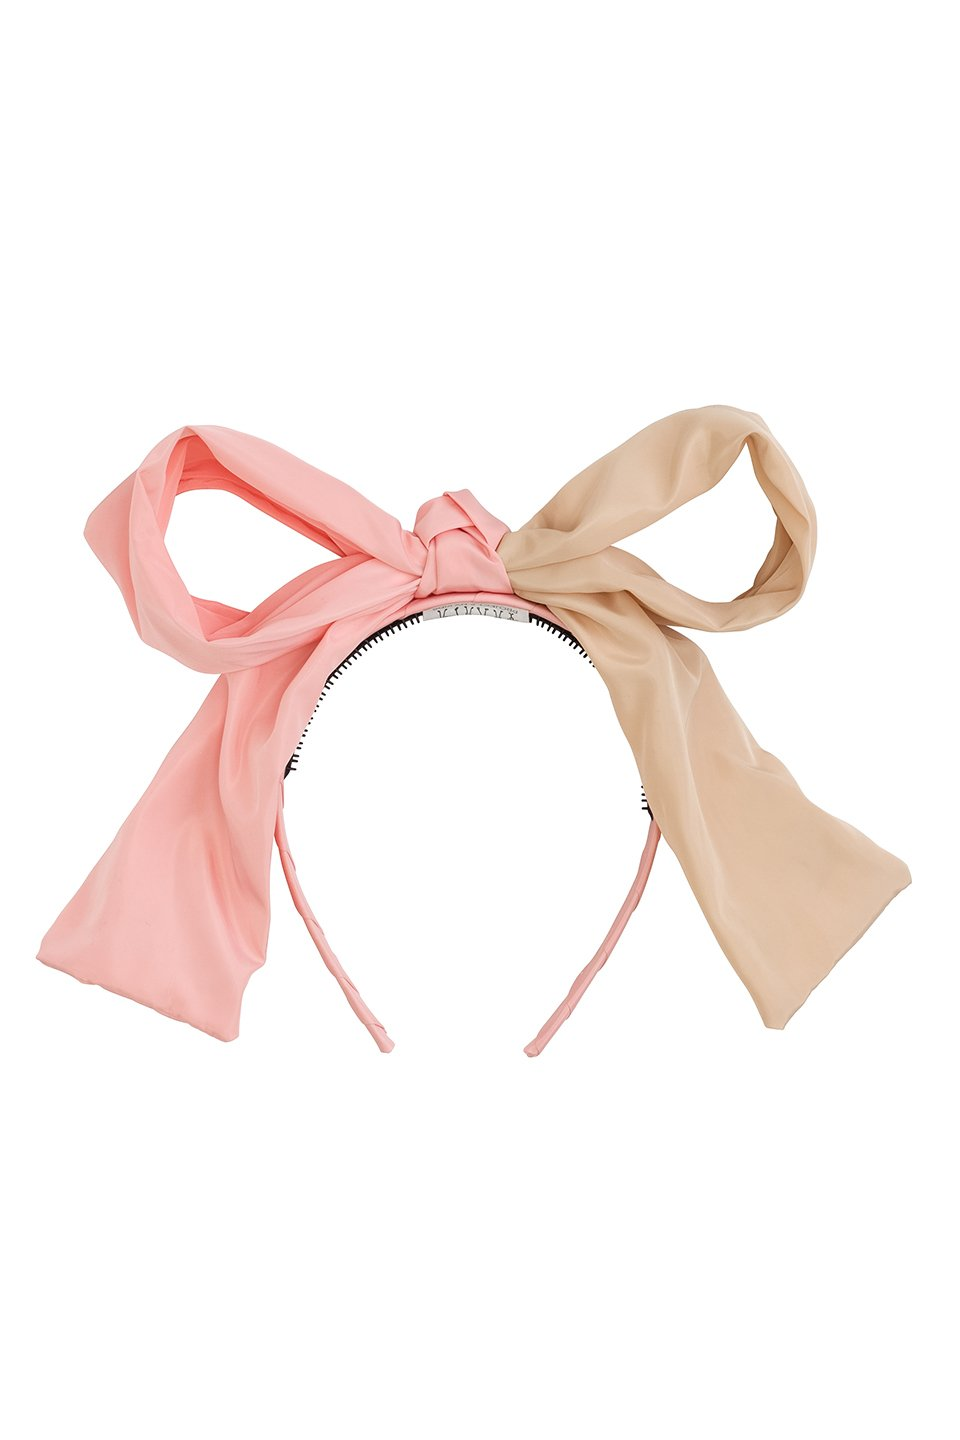 Sia Headband - Blush/Wheat - PROJECT 6, modest fashion